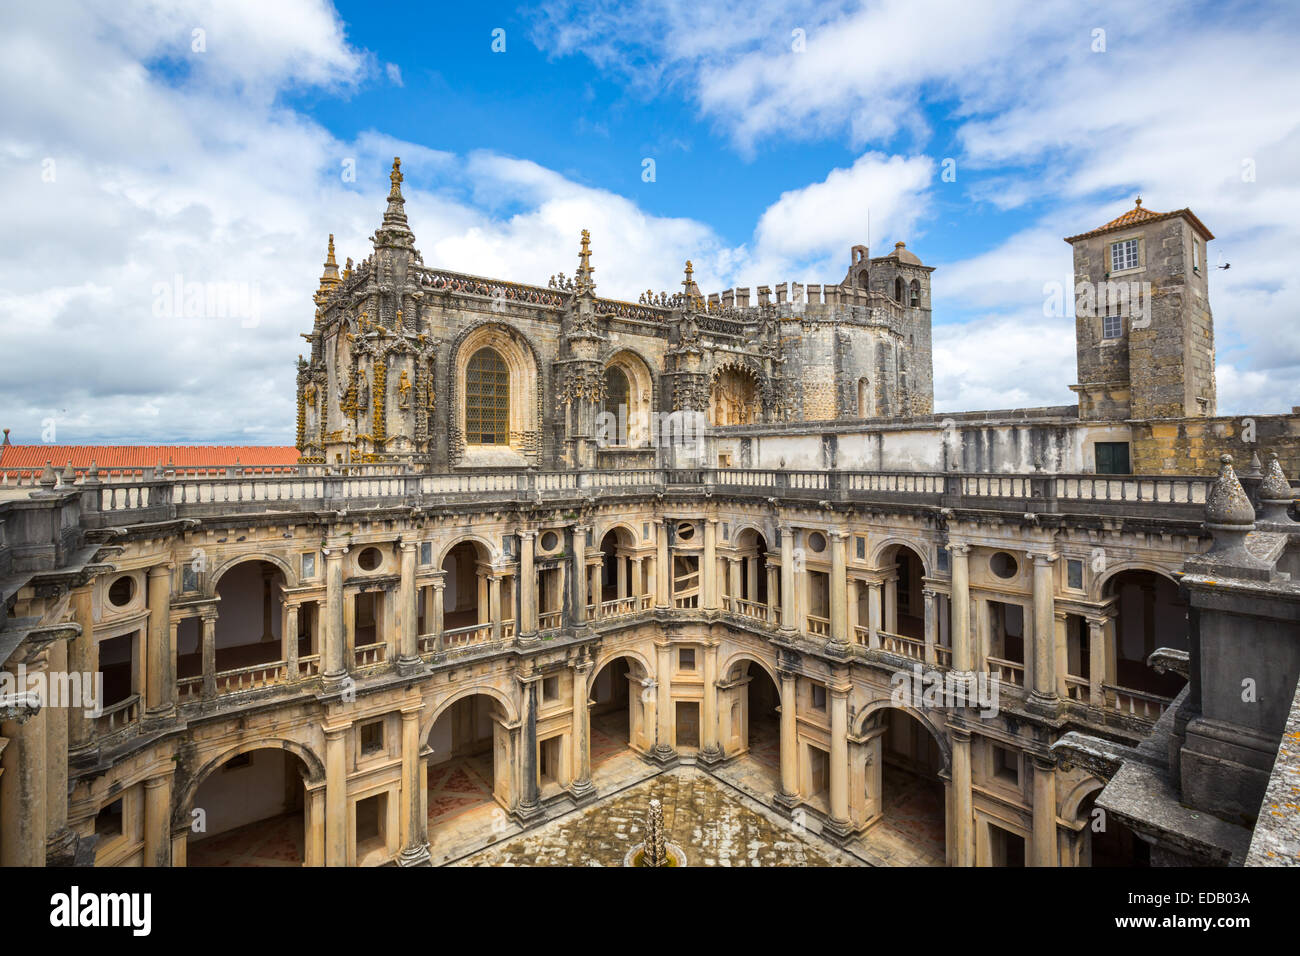 Knights of the Templar Convents of Christ Tomar, Lisbon Portugal - Stock Image